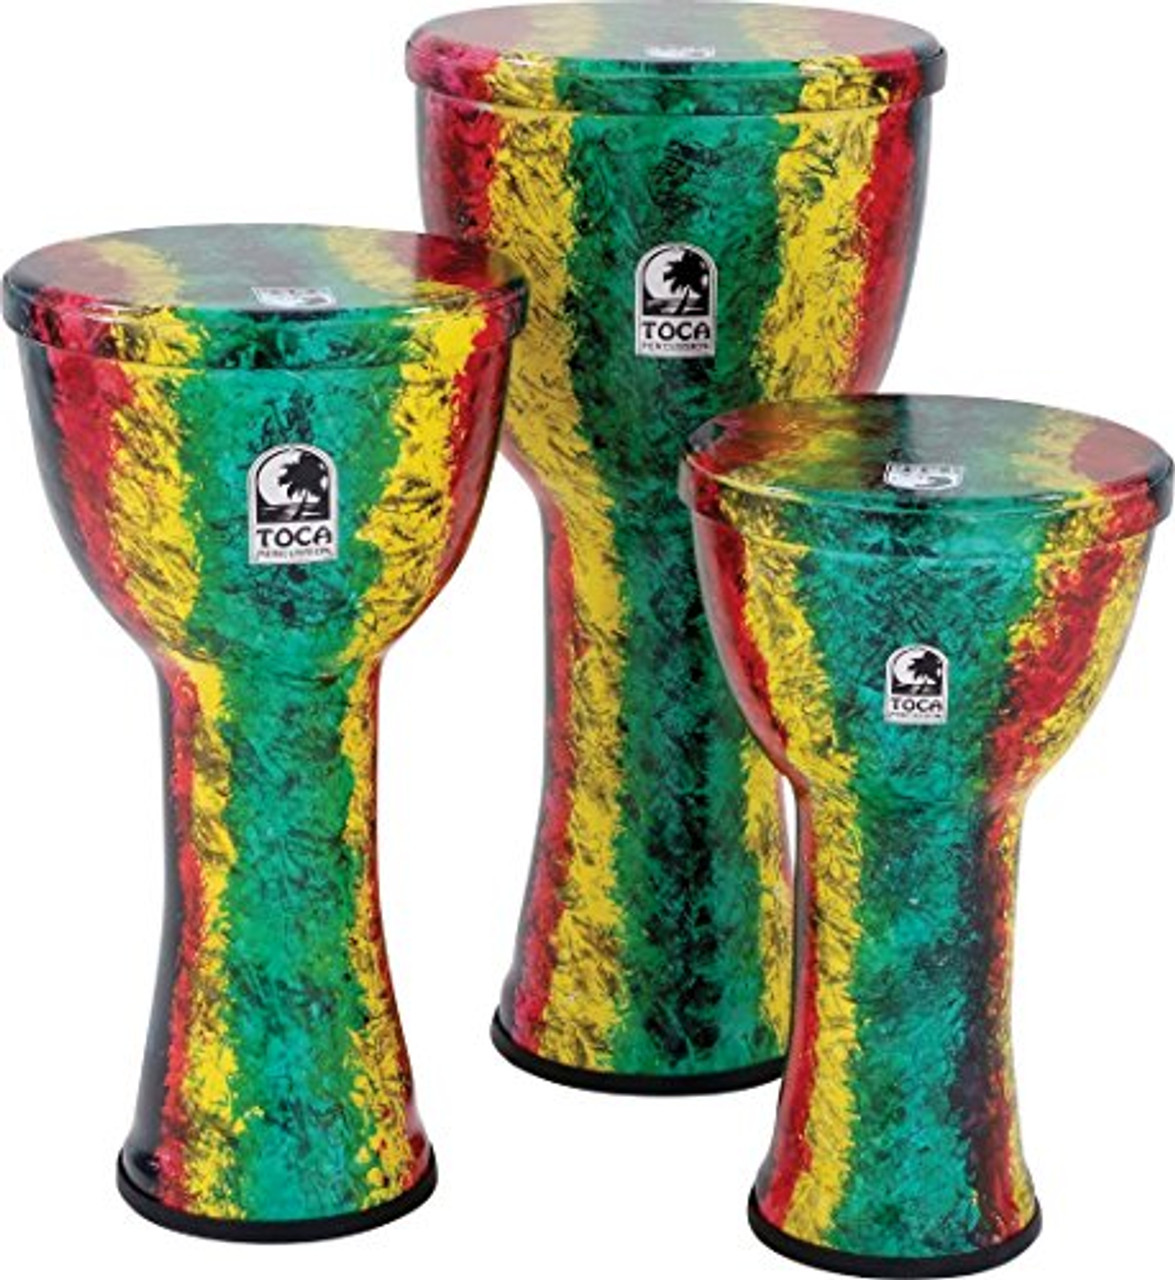 Toca a Freestyle Lightweight Djembe Drum 12 inch Earth Tone (12 inch Earth Tone)